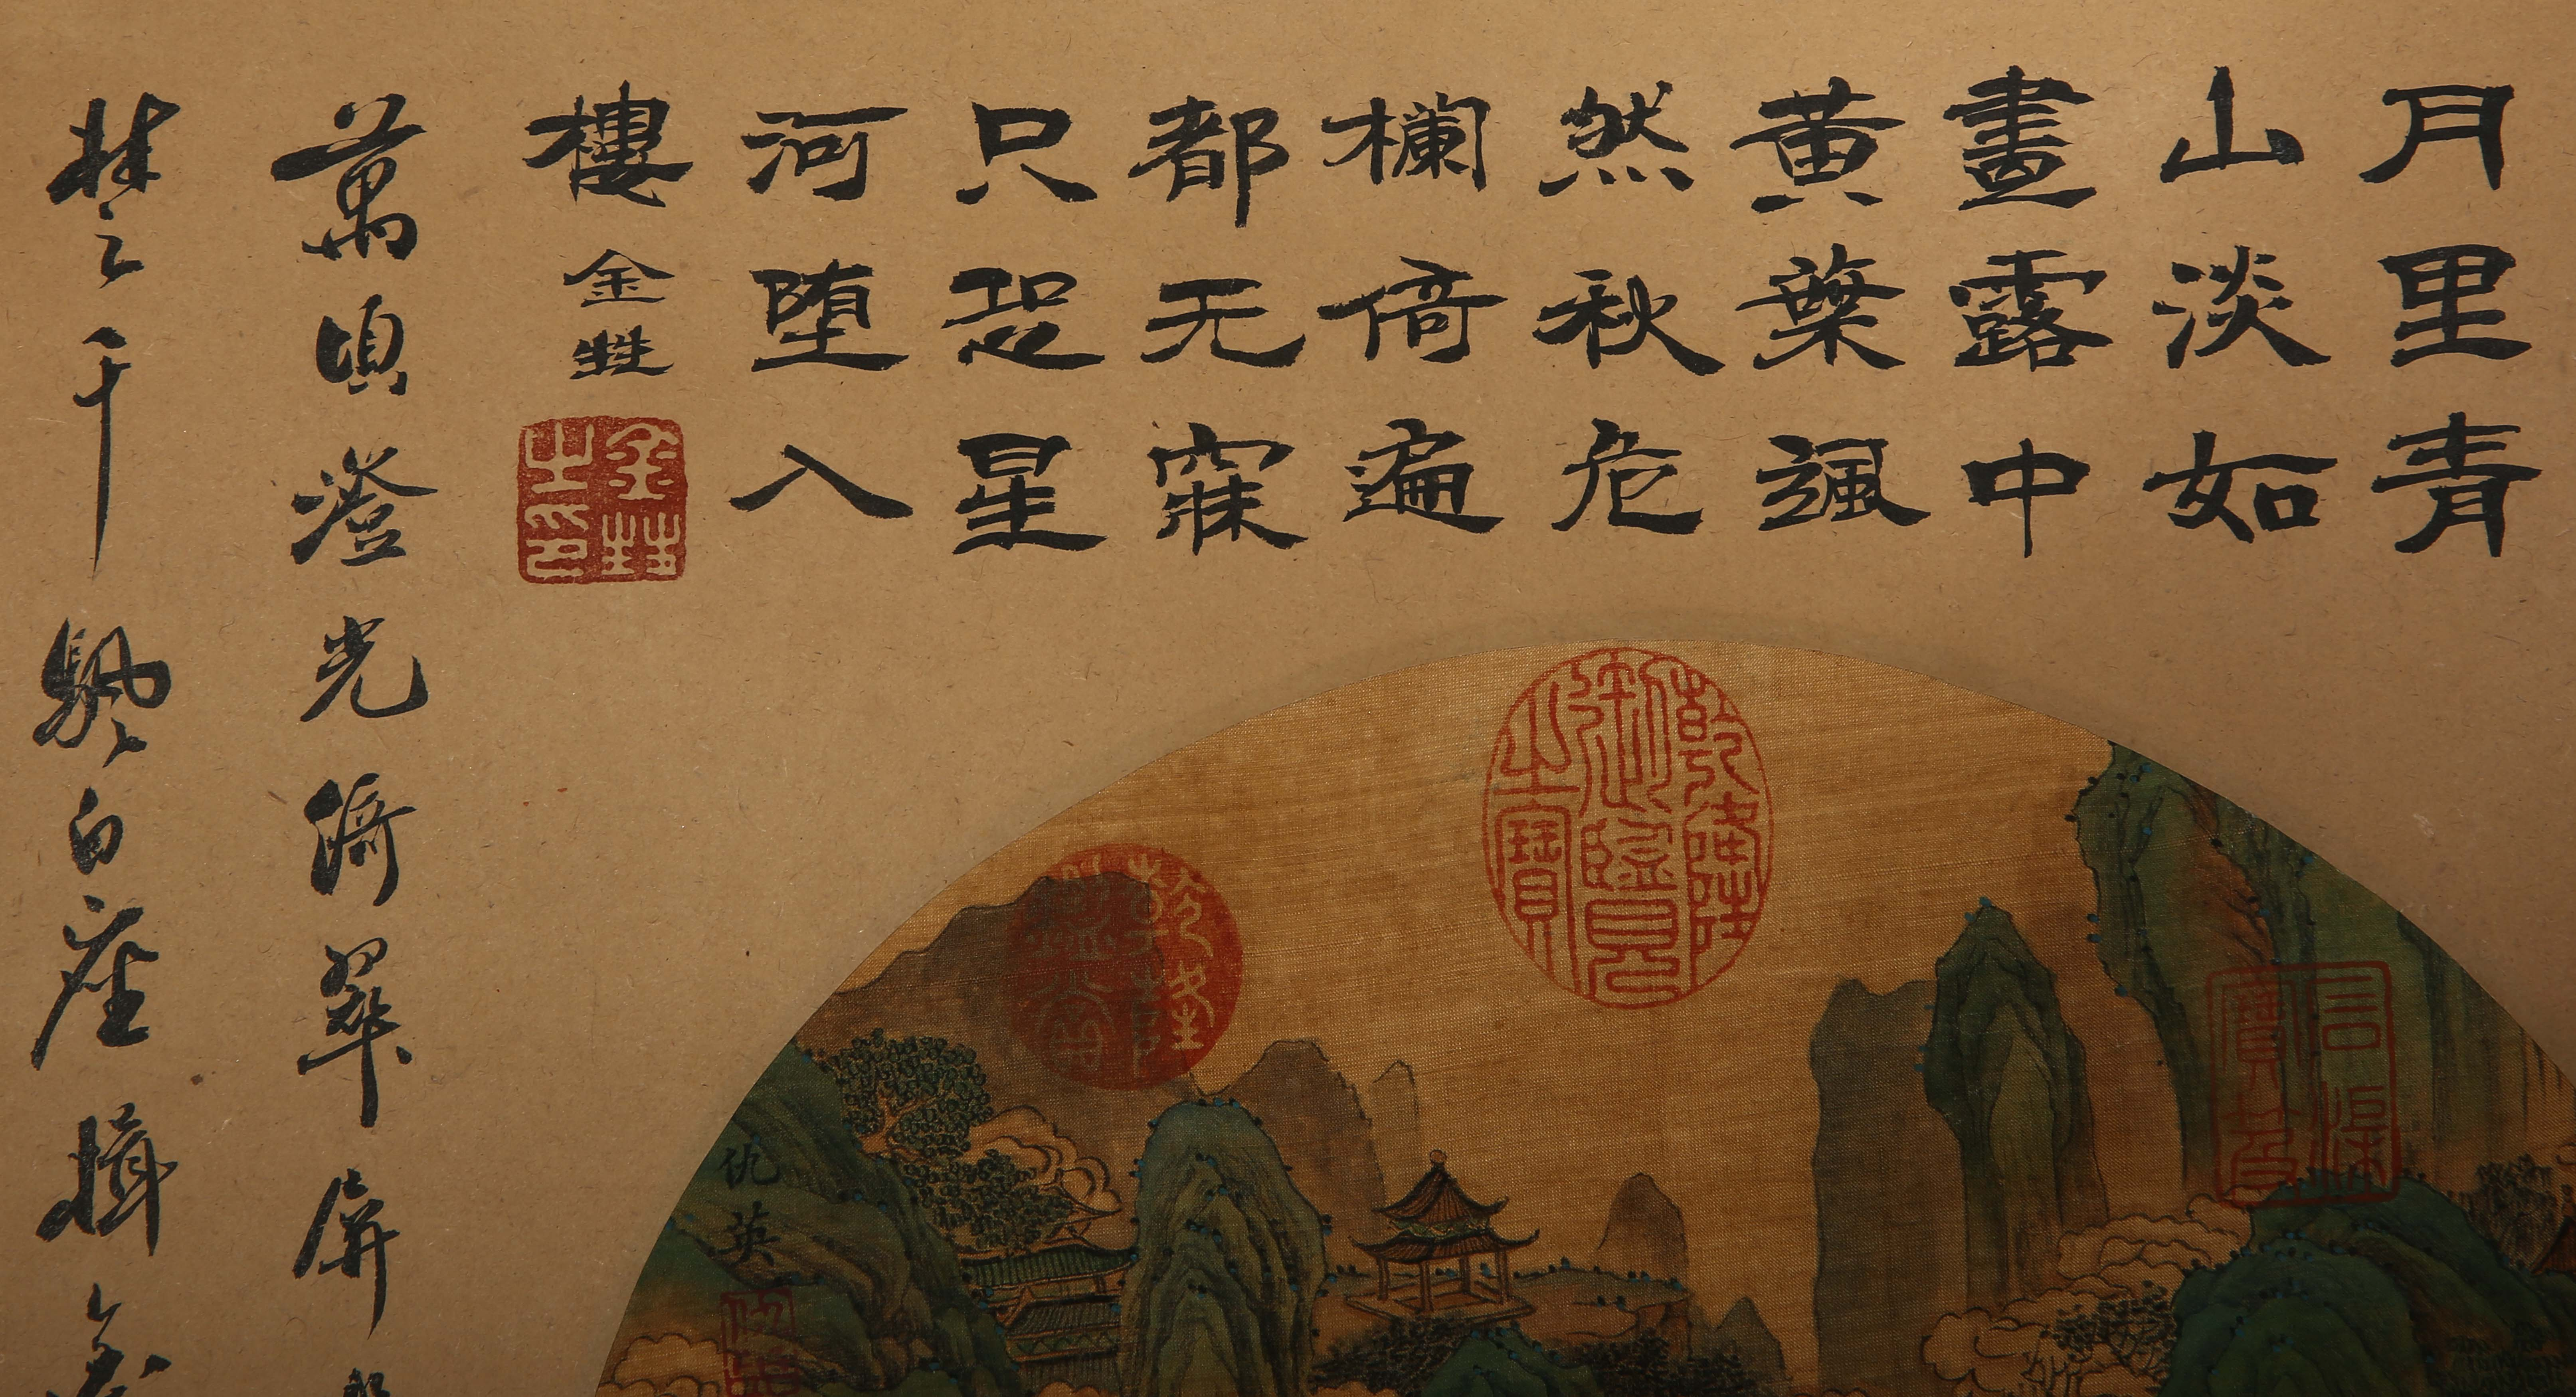 PAINTING AND CALLIGRAPHY 'CITYSCAPE', CHINA - Image 8 of 9